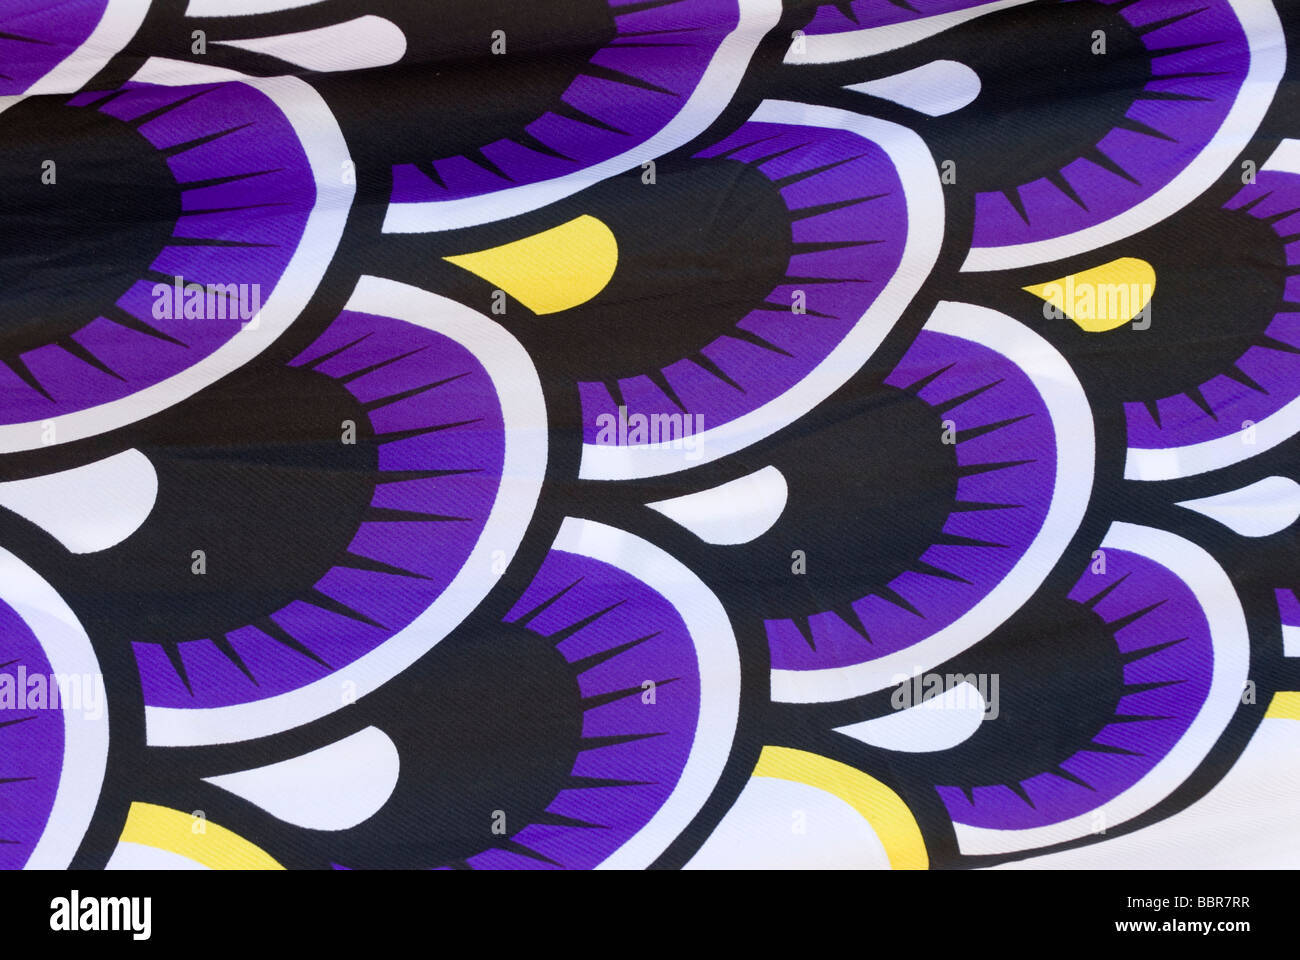 A close up shot of a fabric carp windsock or koinobori streamer showing a fish scale pattern in purple, white, black - Stock Image